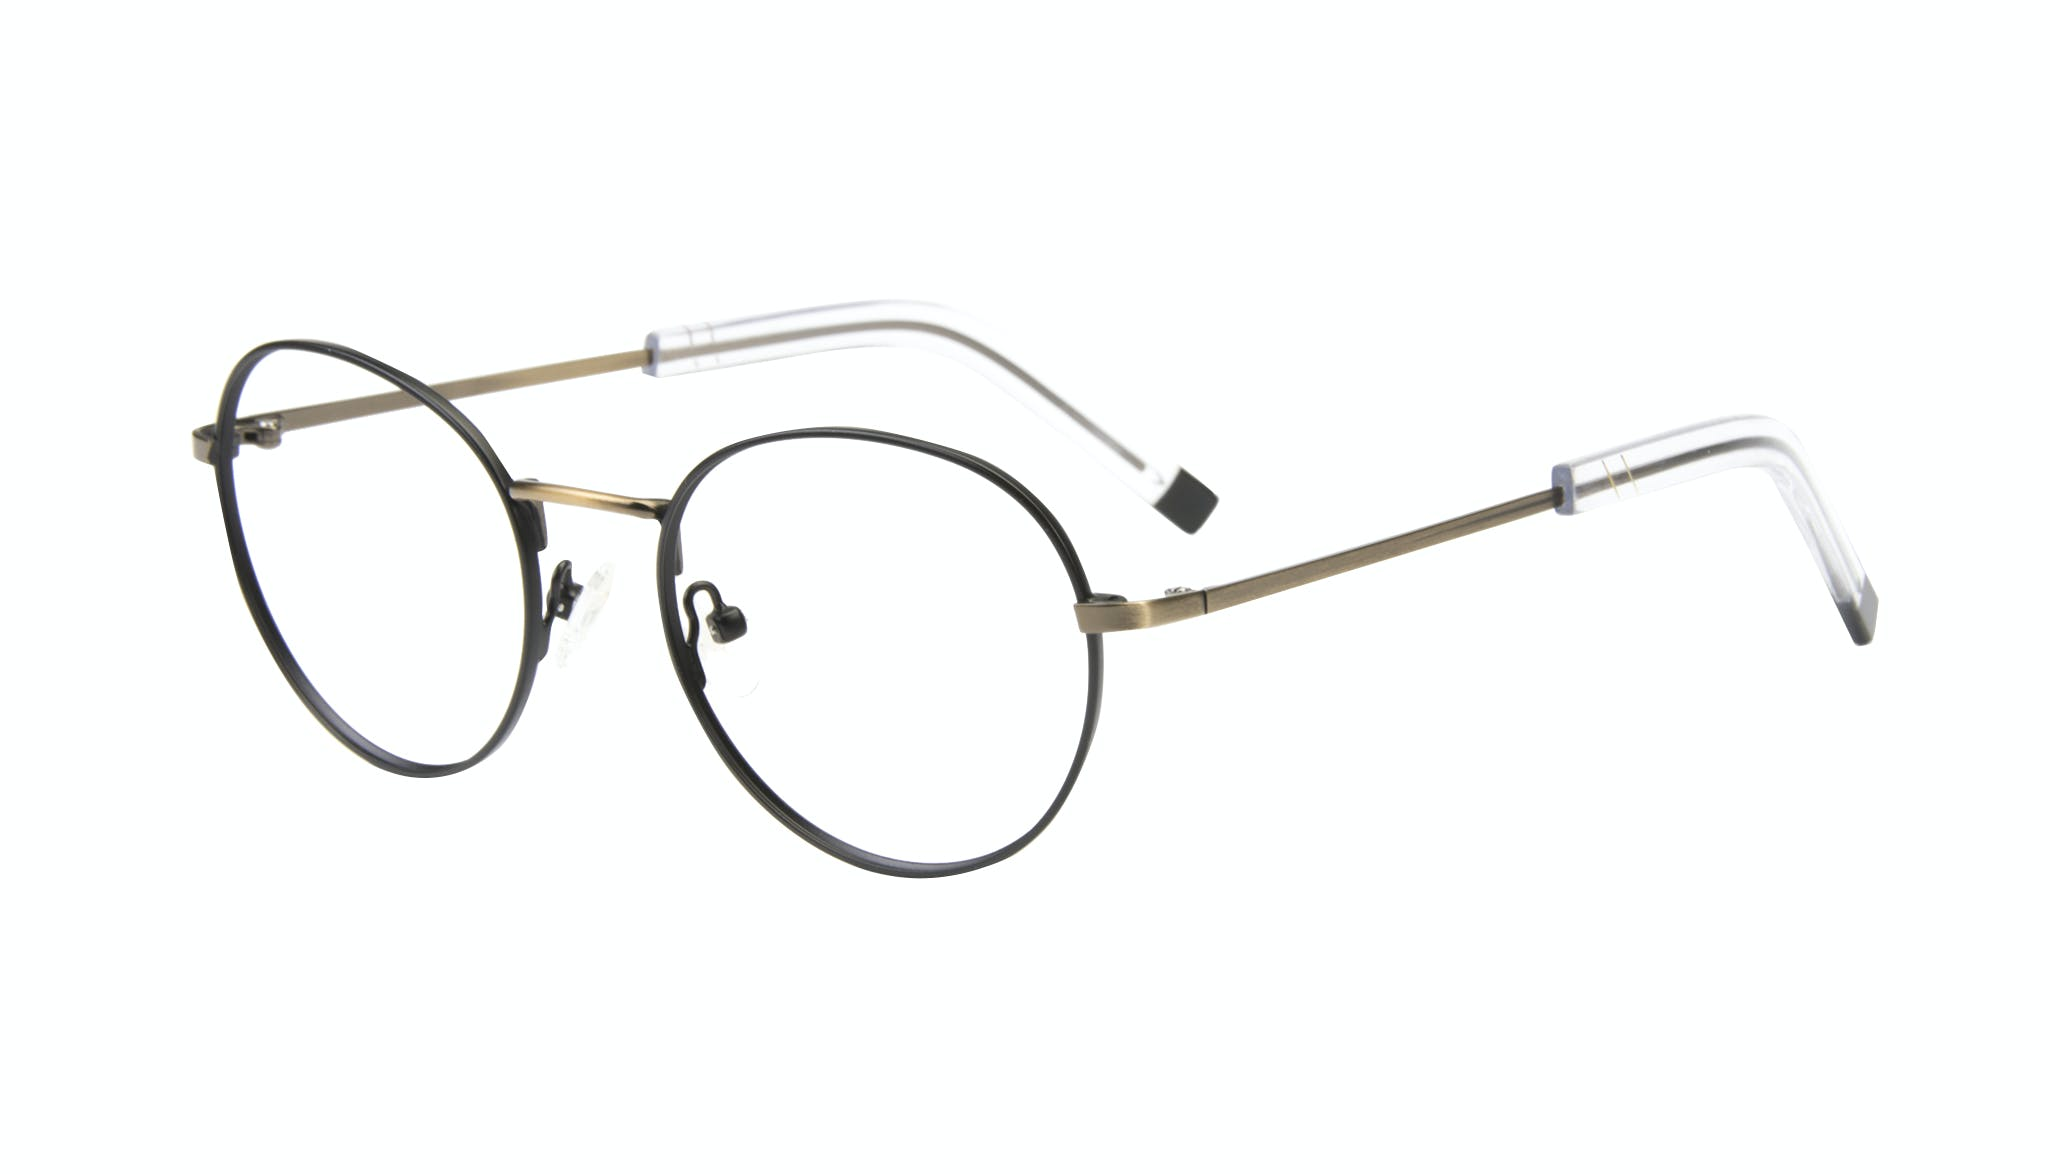 Affordable Fashion Glasses Round Eyeglasses Men Lean Dark Brass Tilt